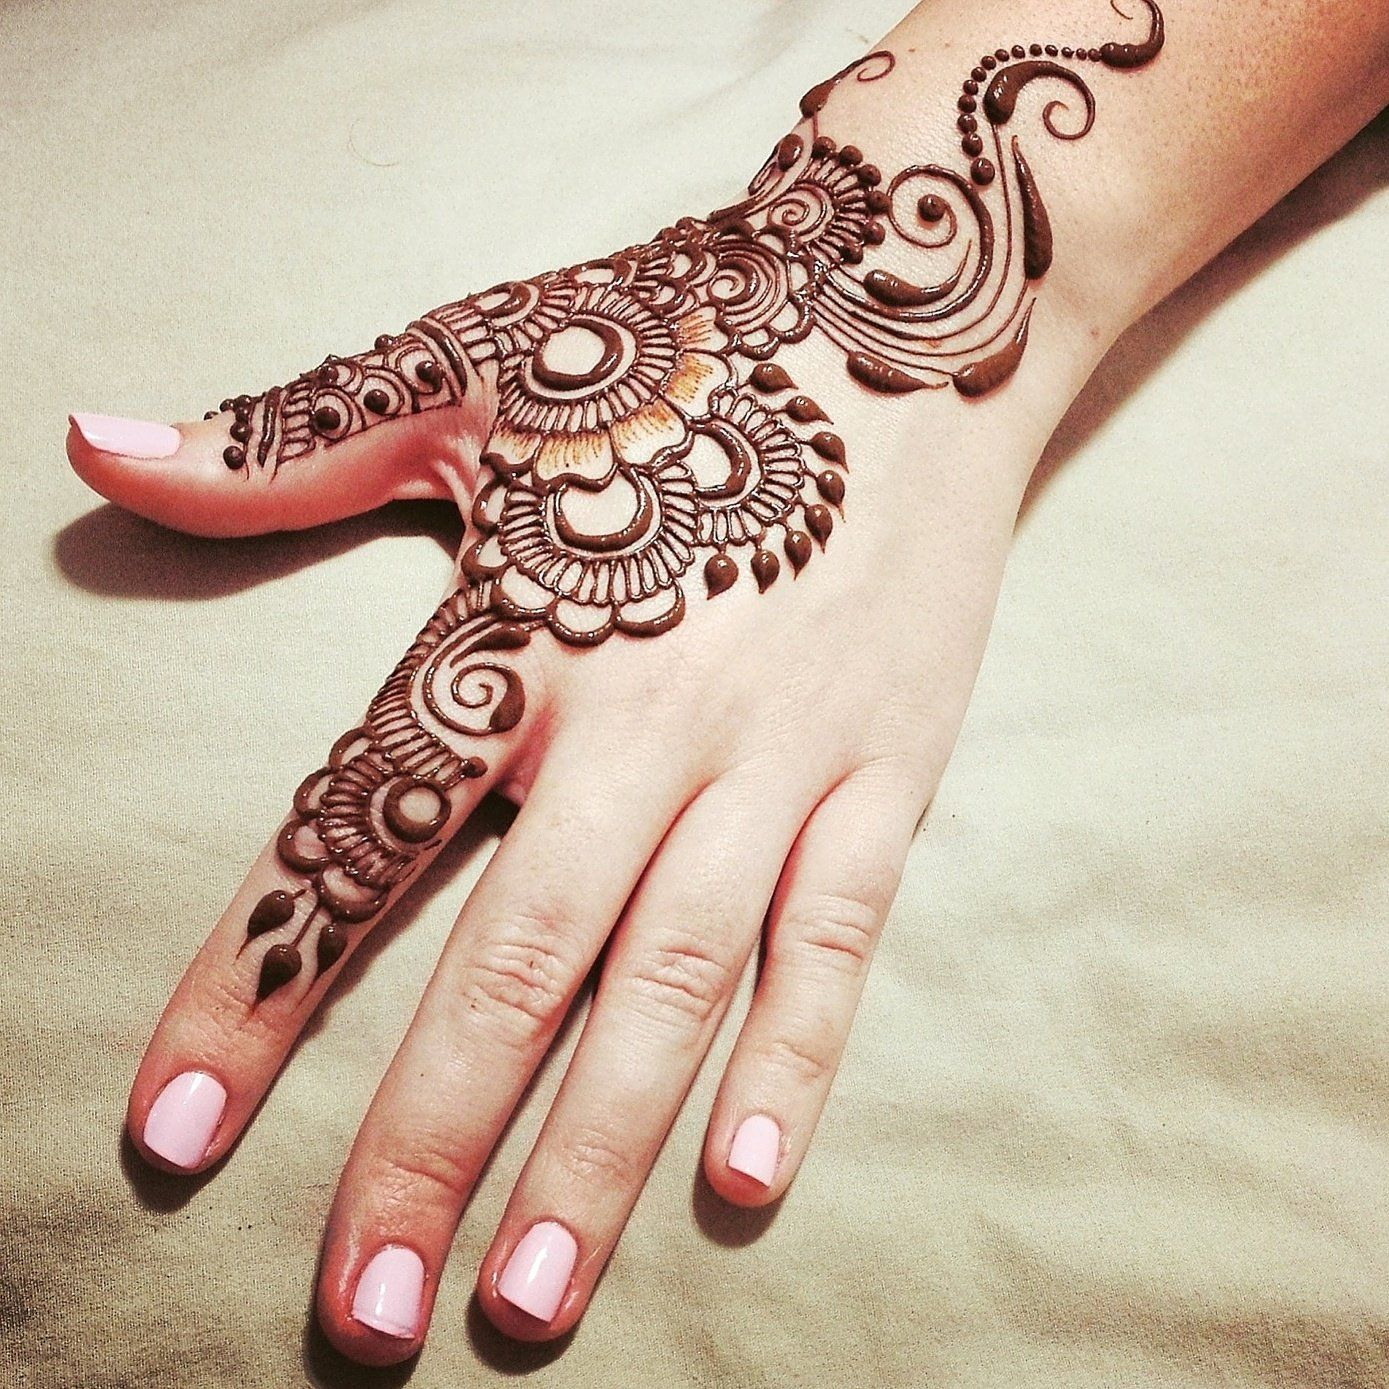 Pin By Erica Li On Henna Mehndi Designs Henna Designs Mehndi